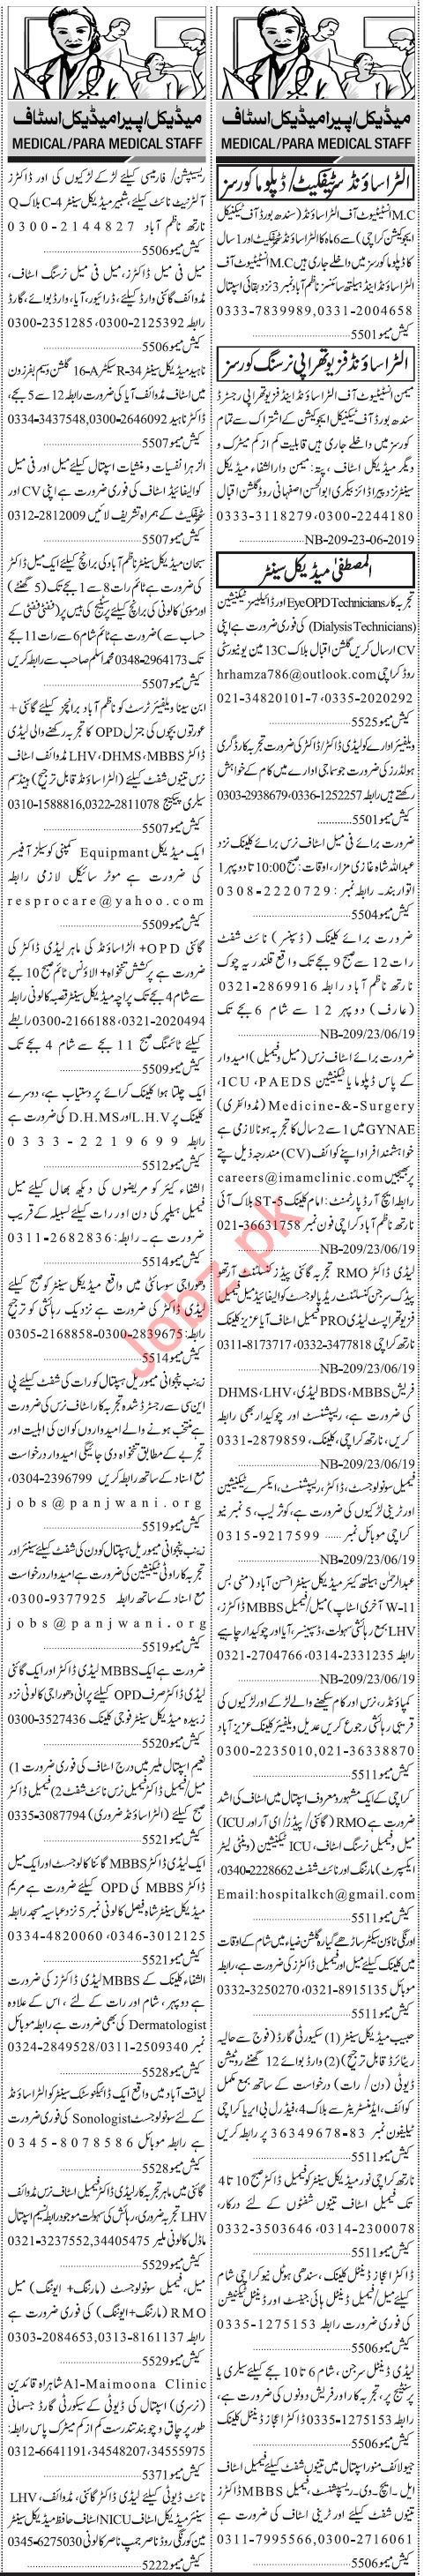 Jang Sunday Classified Ads 23rd June 2019 for Medical Staff